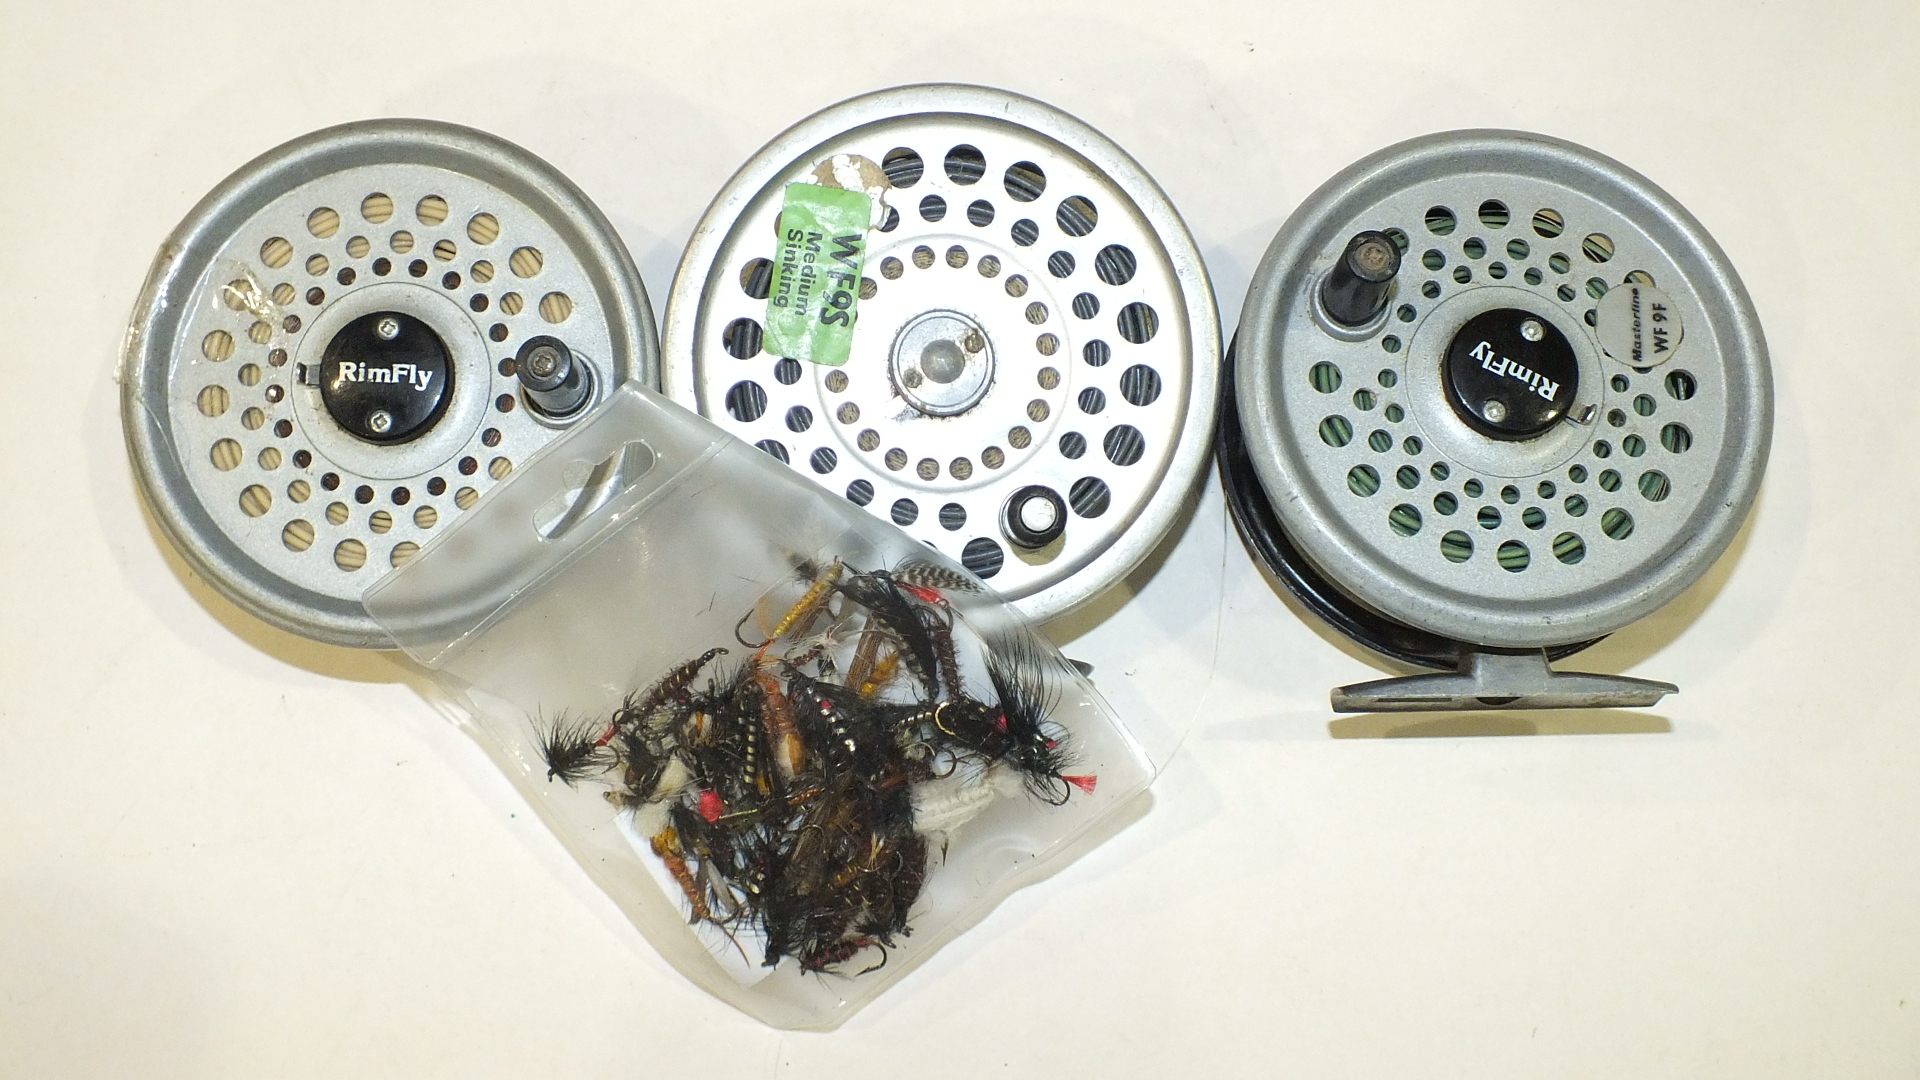 Lot 557 - A Hardy Marquis 10 alloy fly reel and line and a Rimfly fly reel with spare spool and two lines, etc